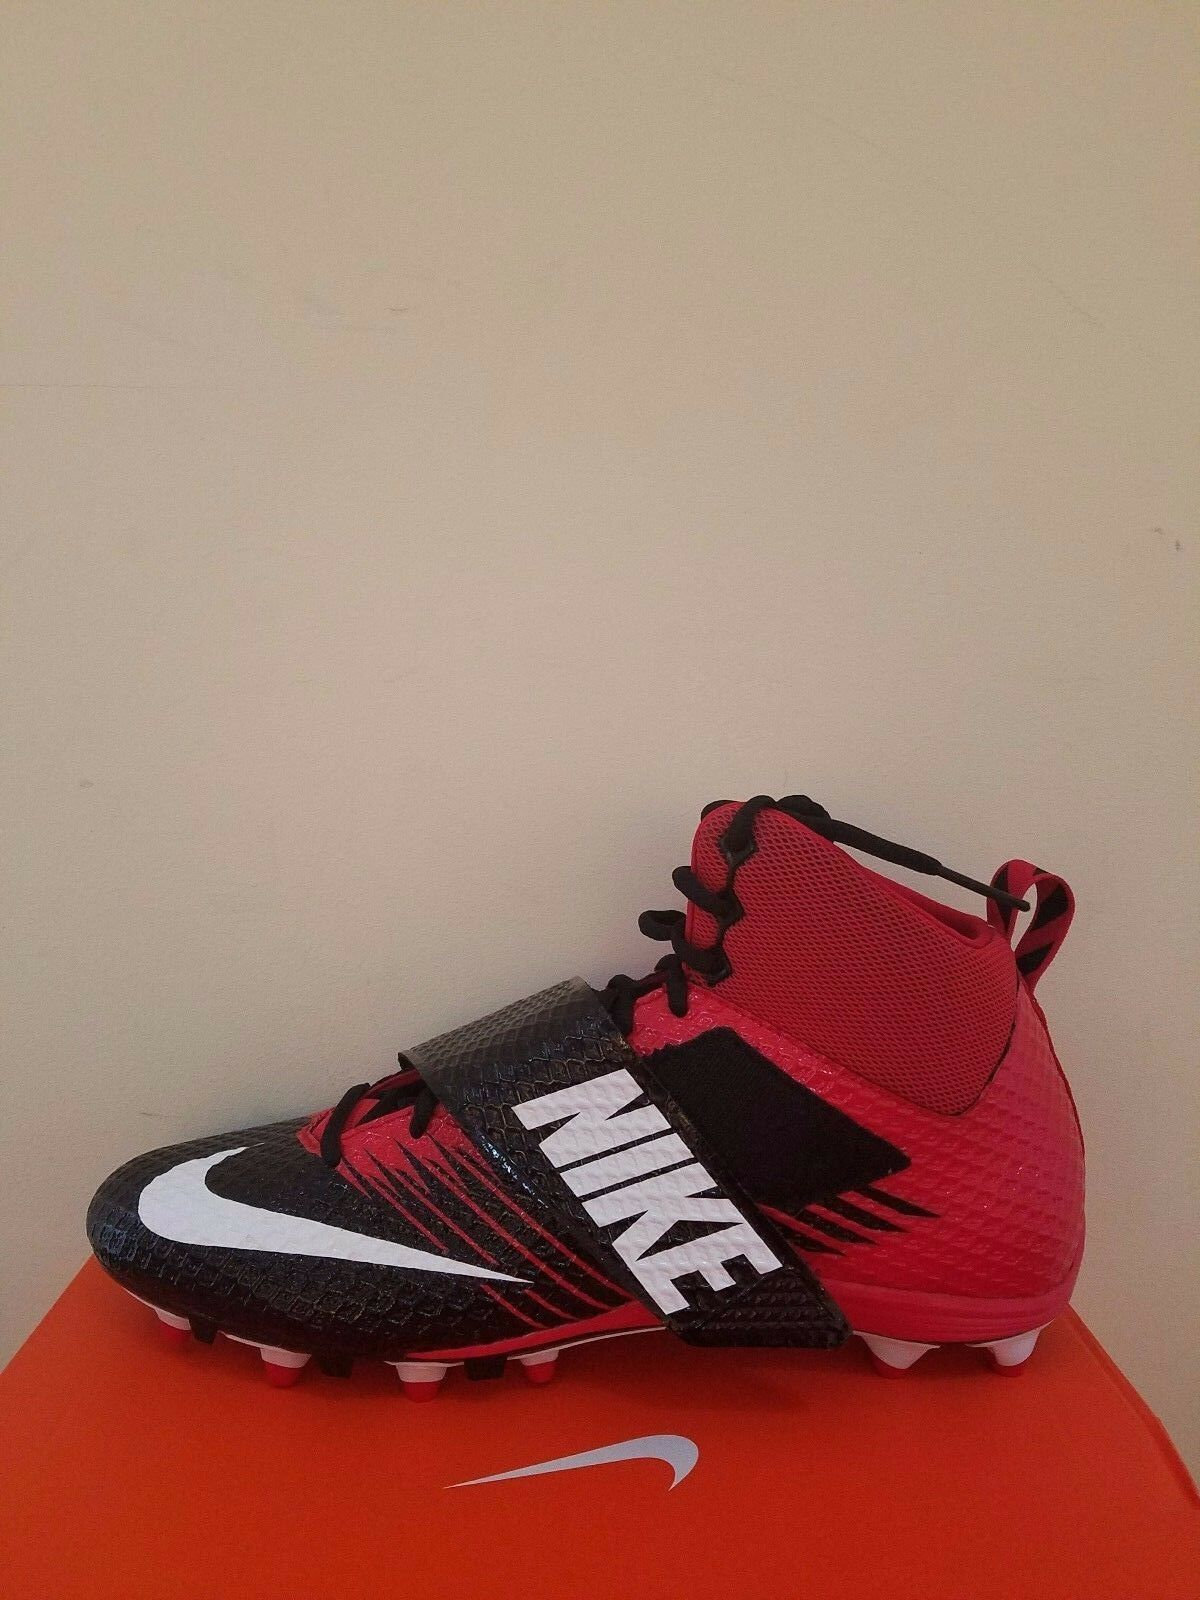 Nike hombre cleat lunarbeast Pro TD Football cleat hombre comodo dc3fb8